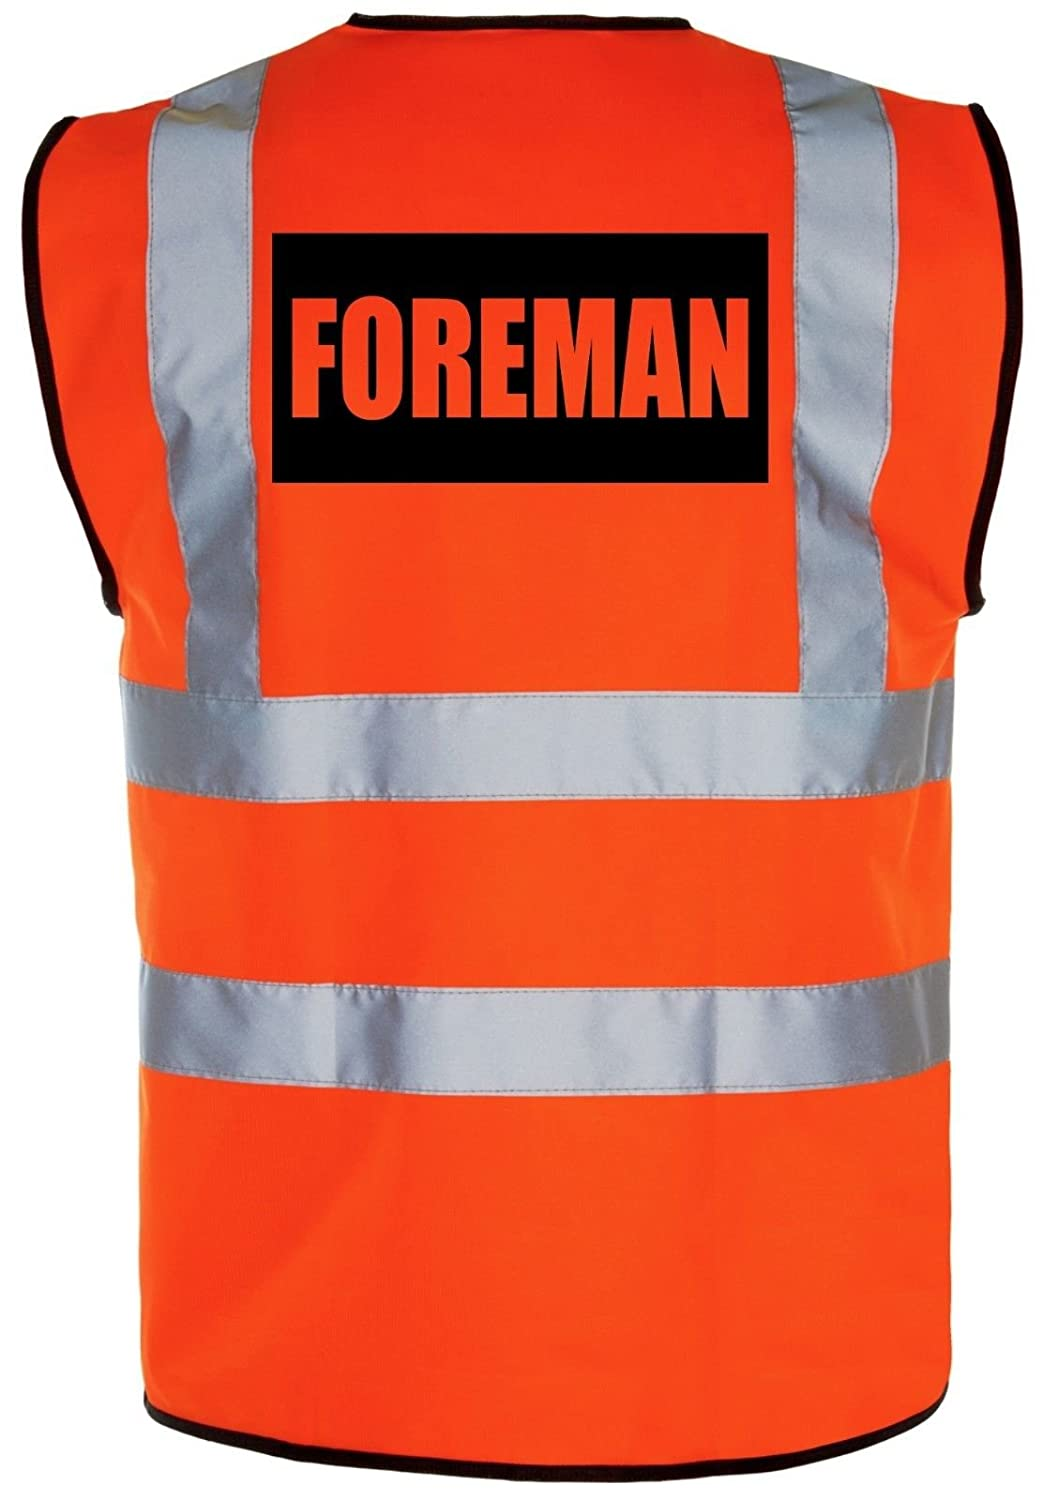 FOREMAN - Hi-Vis High-Viz Visibility Safety Vest/Waistcoat | Yellow/Orange Supertouch